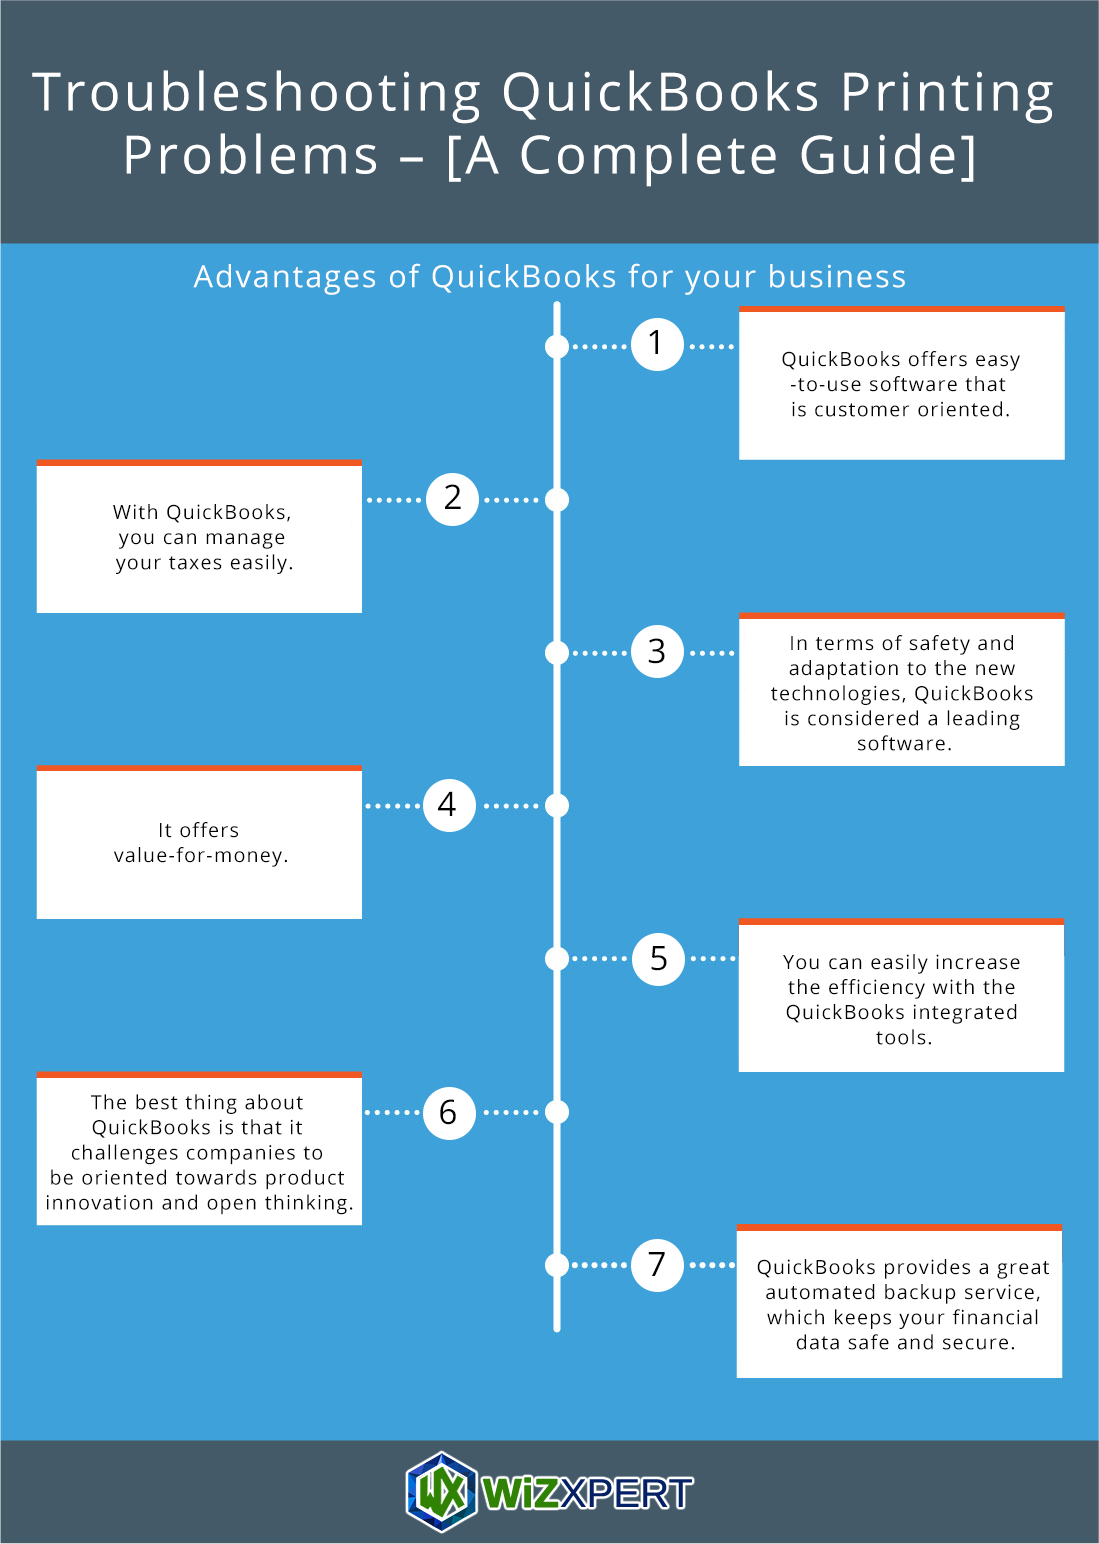 Troubleshooting QuickBooks Printing Problems - [A Complete